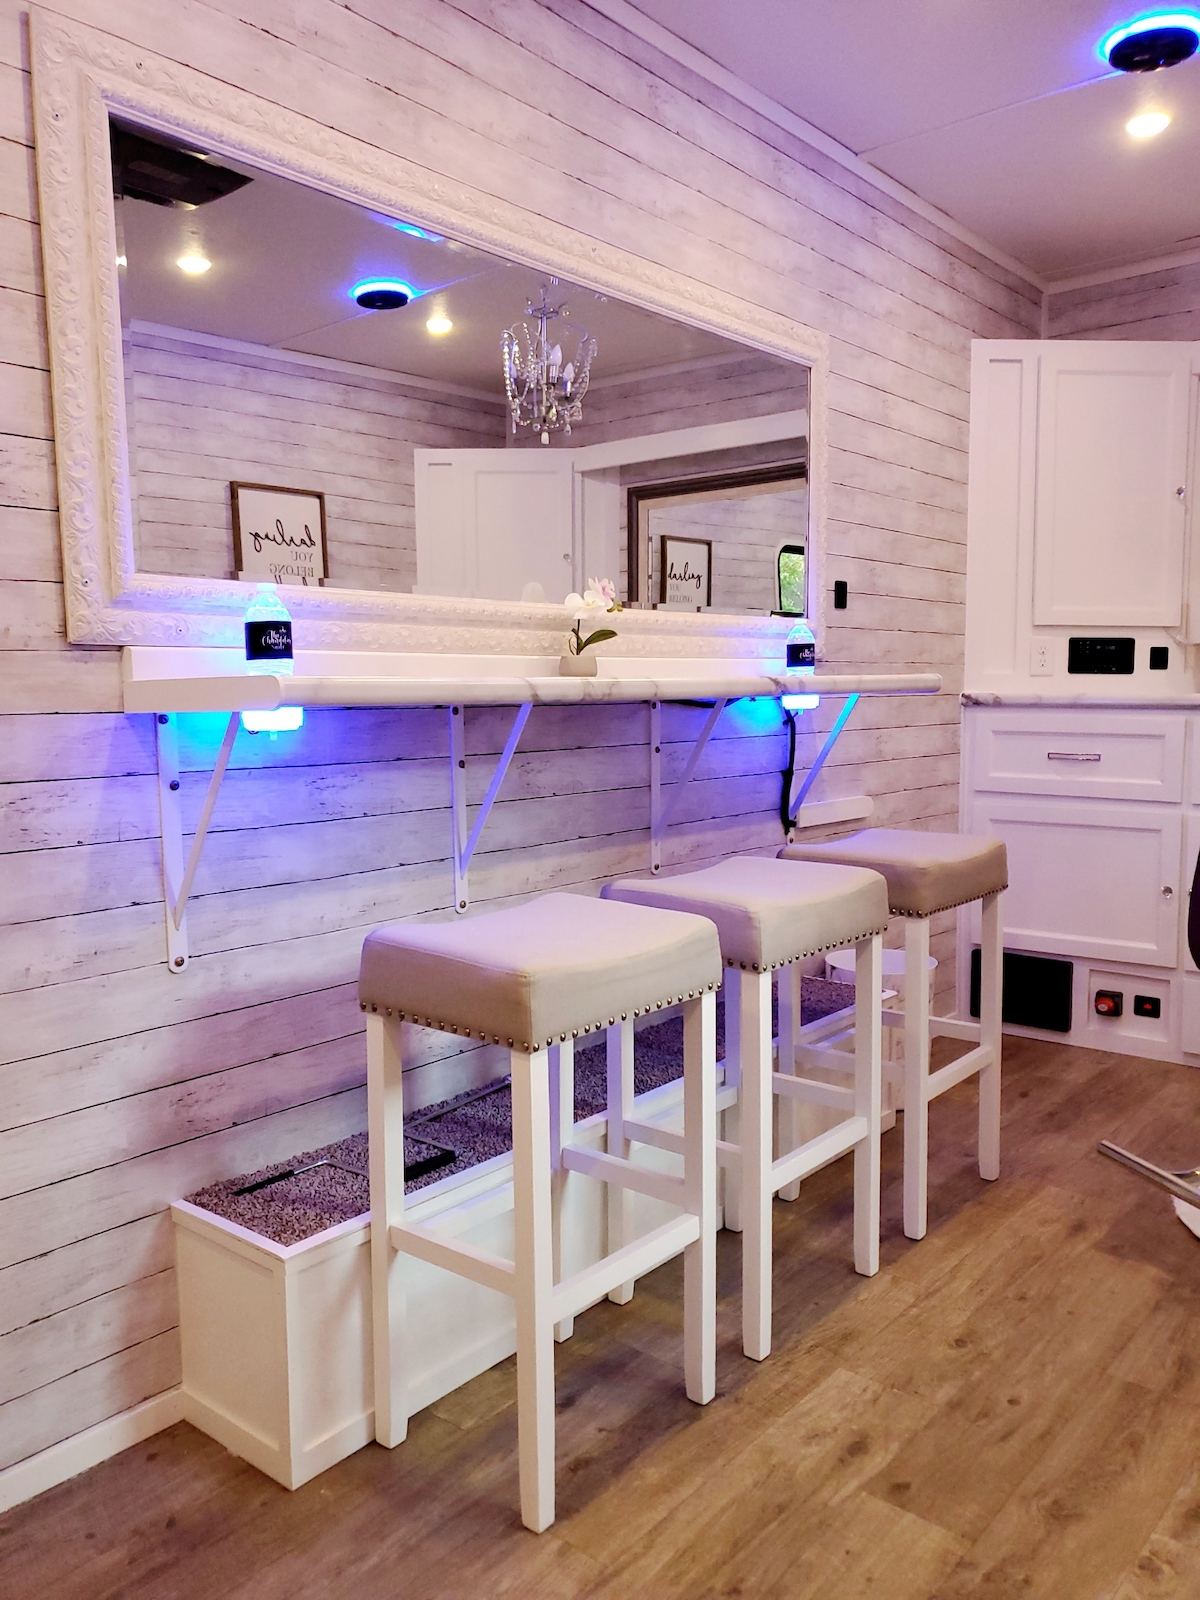 Mobile bridal suite with 3 countertop chairs and large mirror